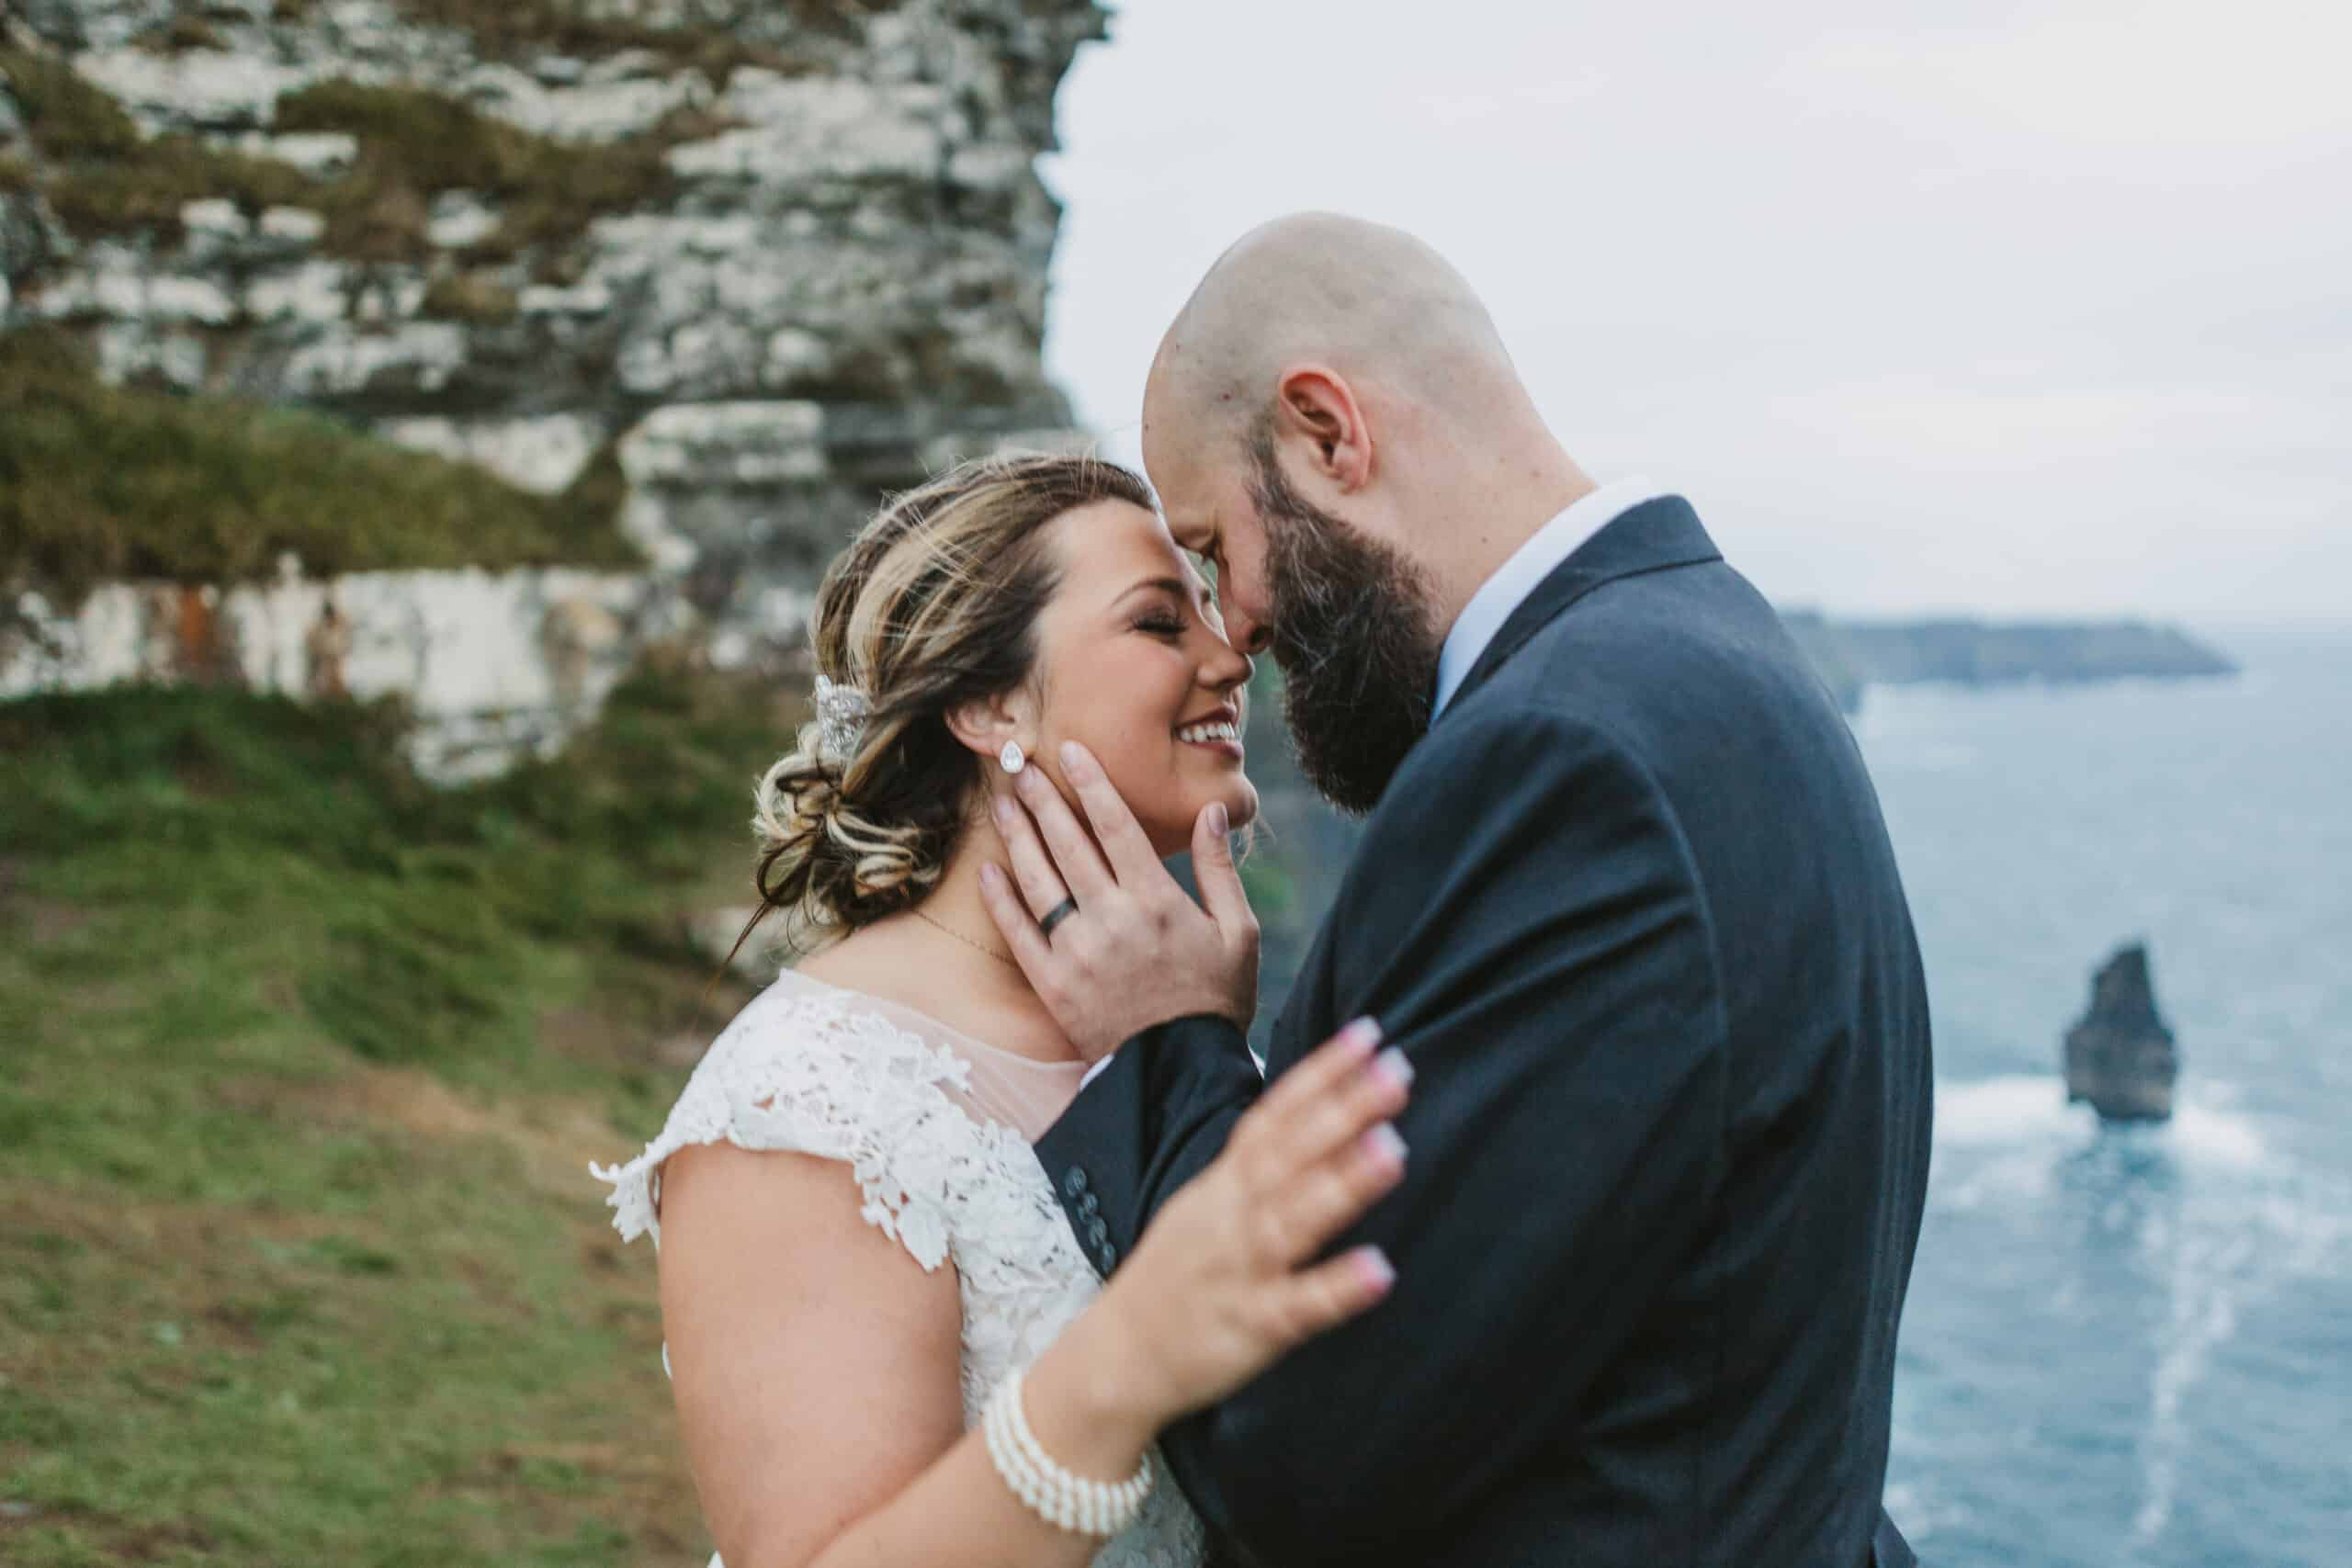 Cliffs of Moher Wedding Hags head, grooms hand on brides face